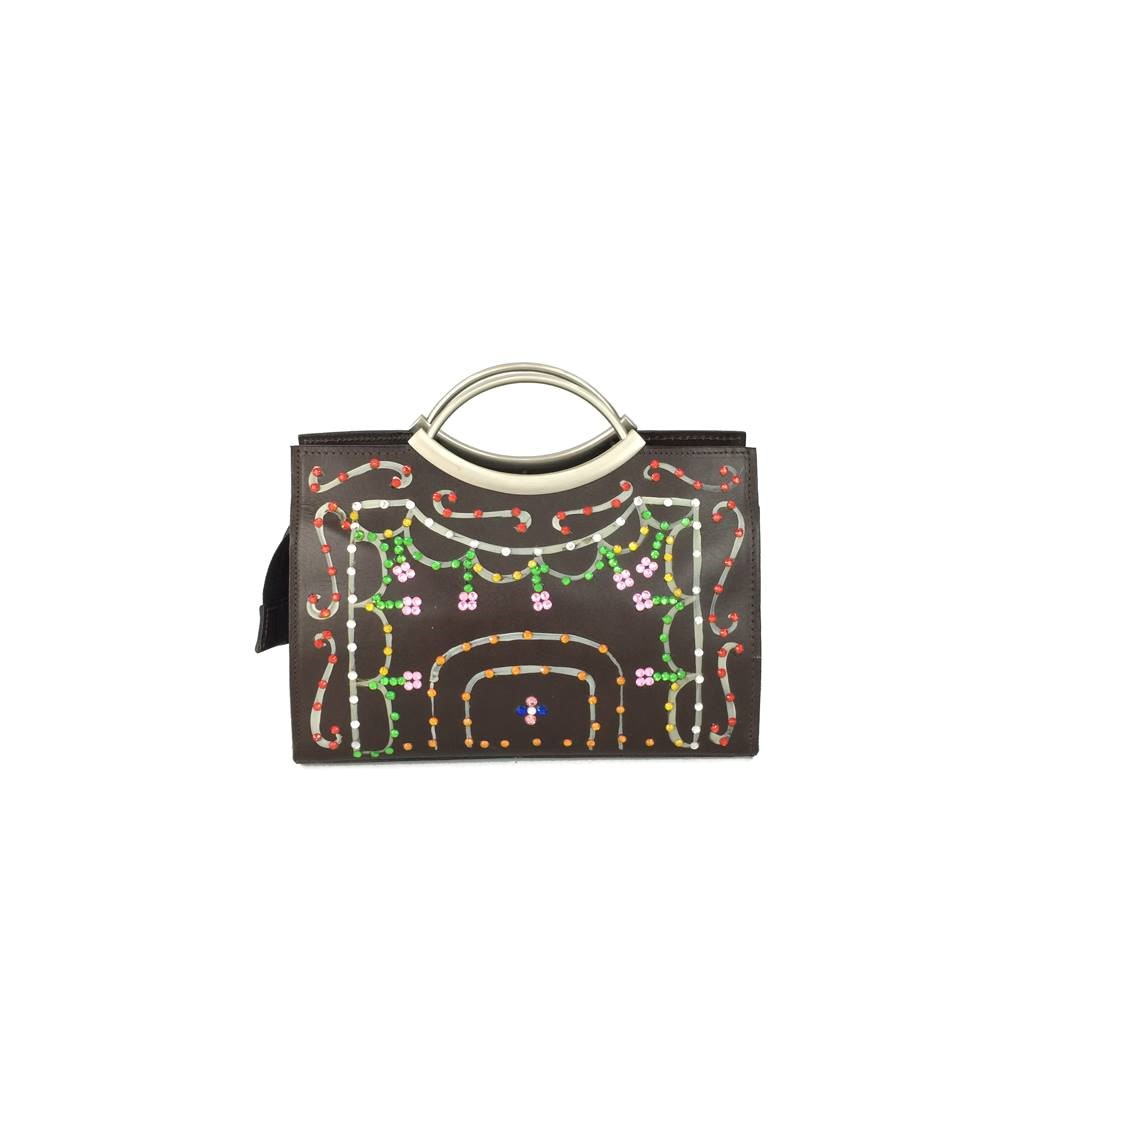 Borsa Tjndara glam brown light